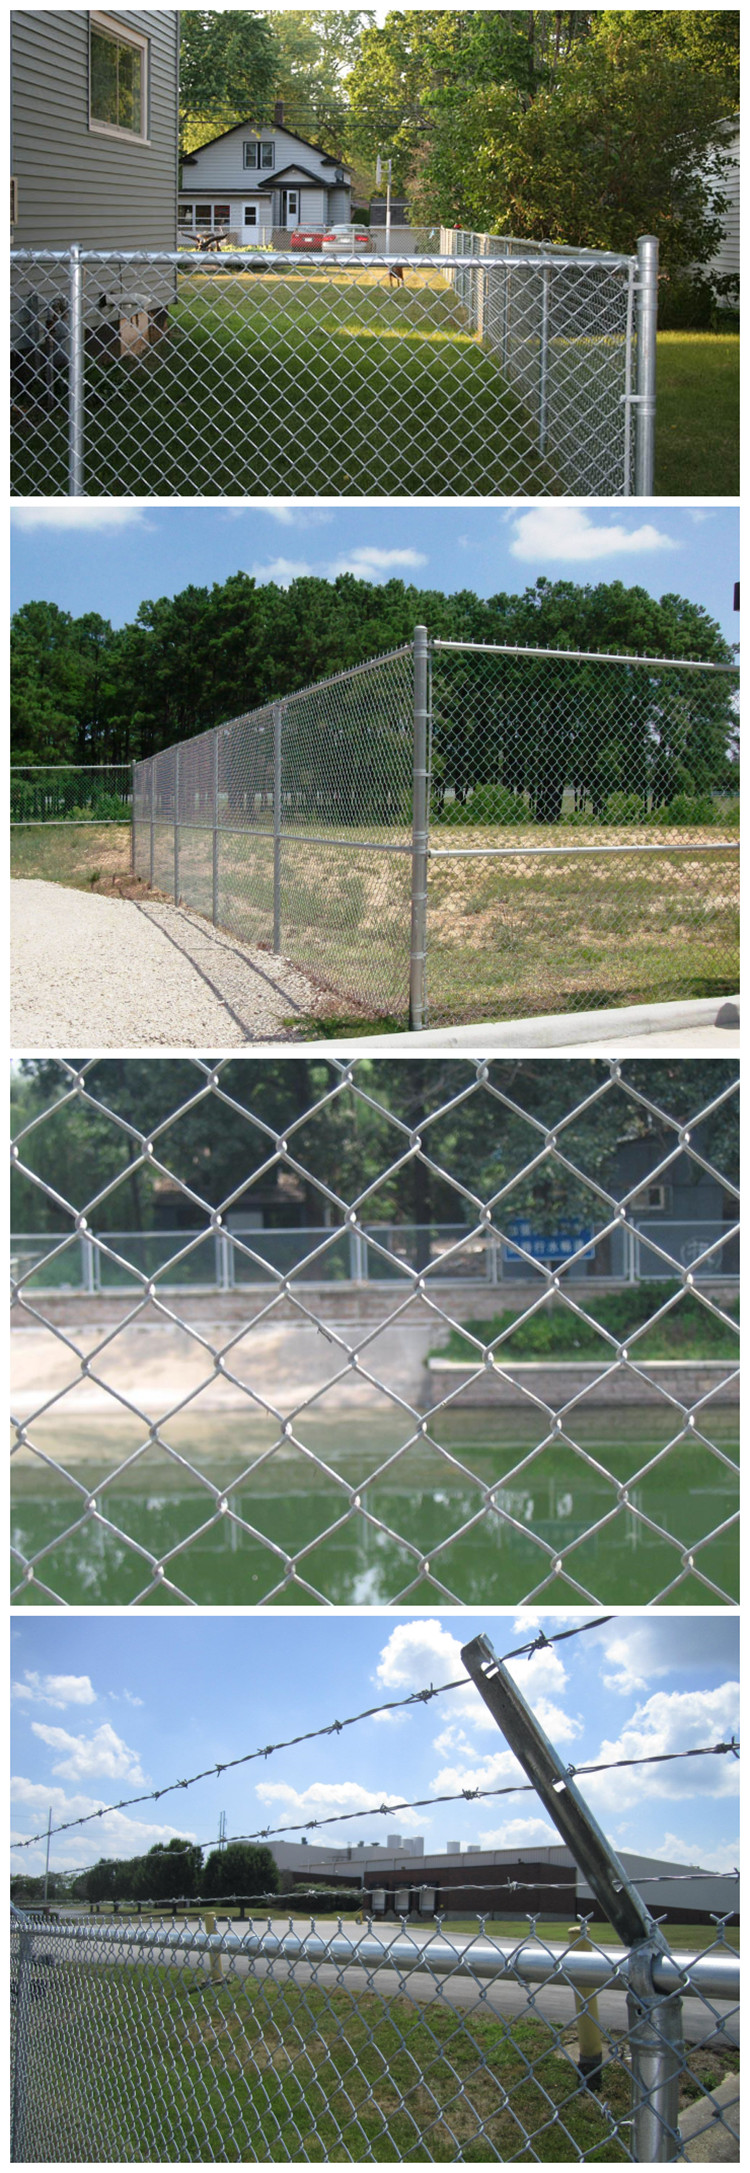 usd chain link fence 9 (3)